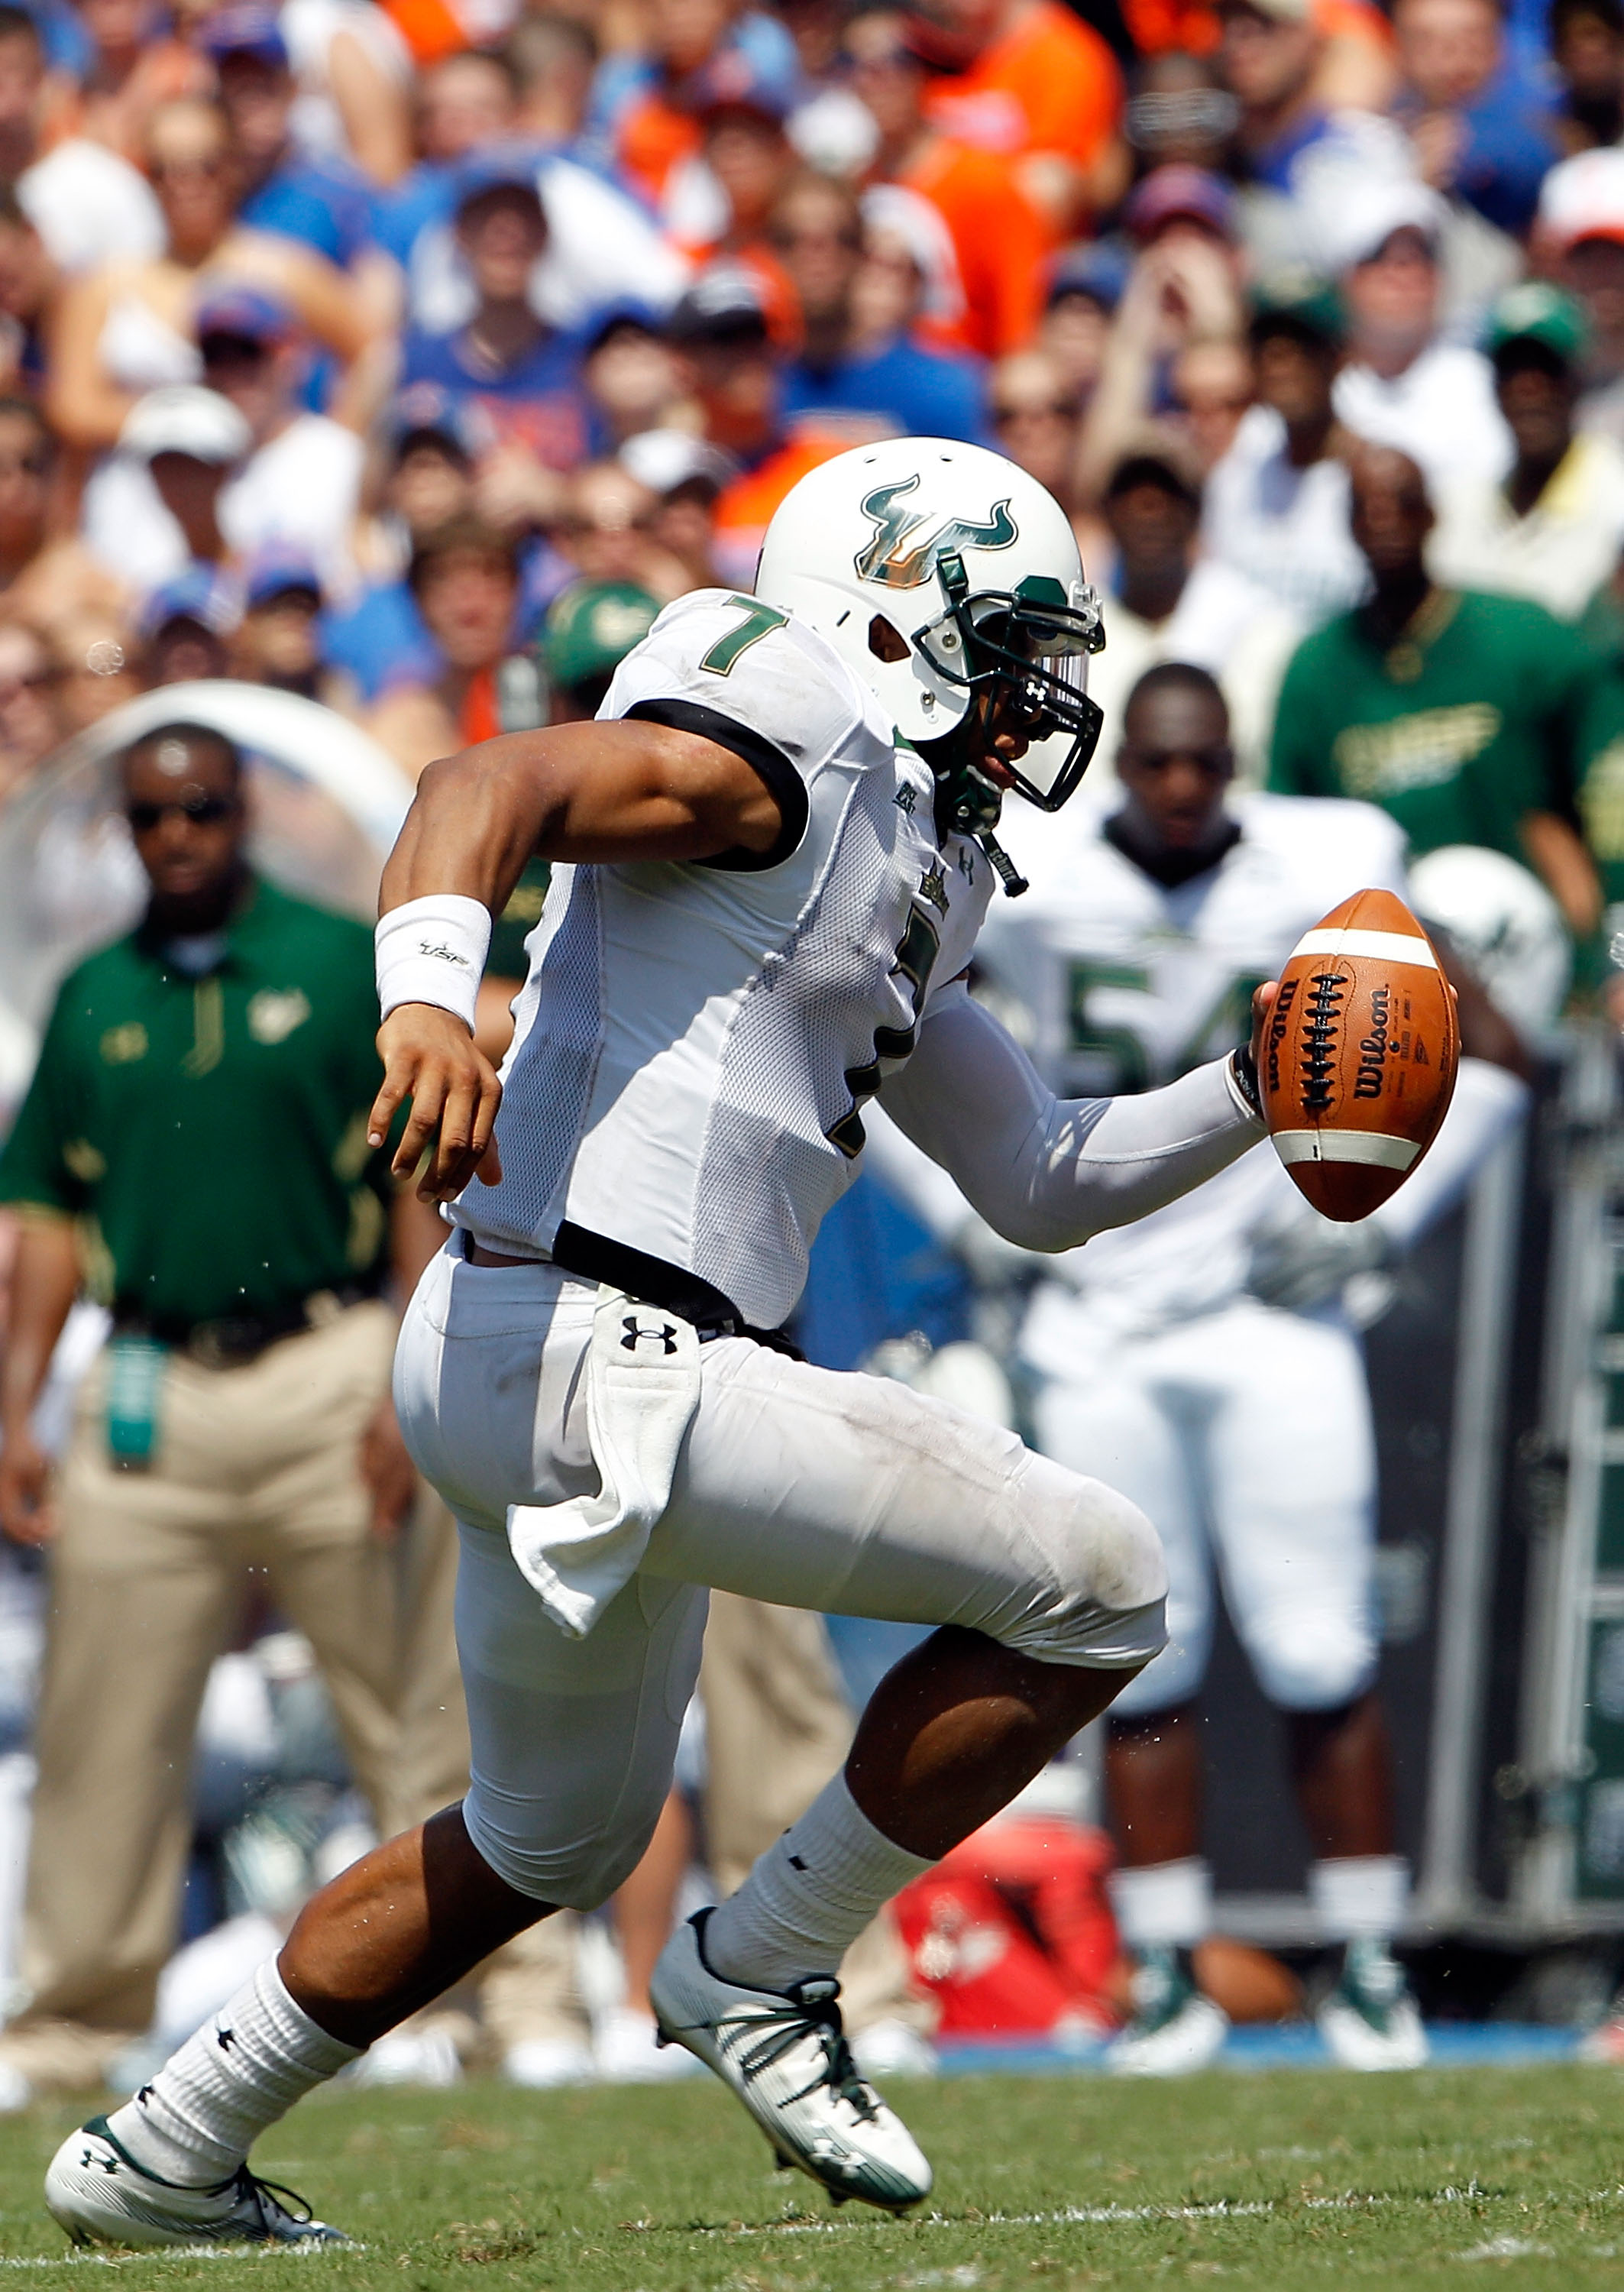 GAINESVILLE, FL - SEPTEMBER 11:  Quarterback B.J. Daniels #7 of the South Florida Bulls runs for yardage during a game against the Florida Gators at Ben Hill Griffin Stadium on September 11, 2010 in Gainesville, Florida.  (Photo by Sam Greenwood/Getty Ima